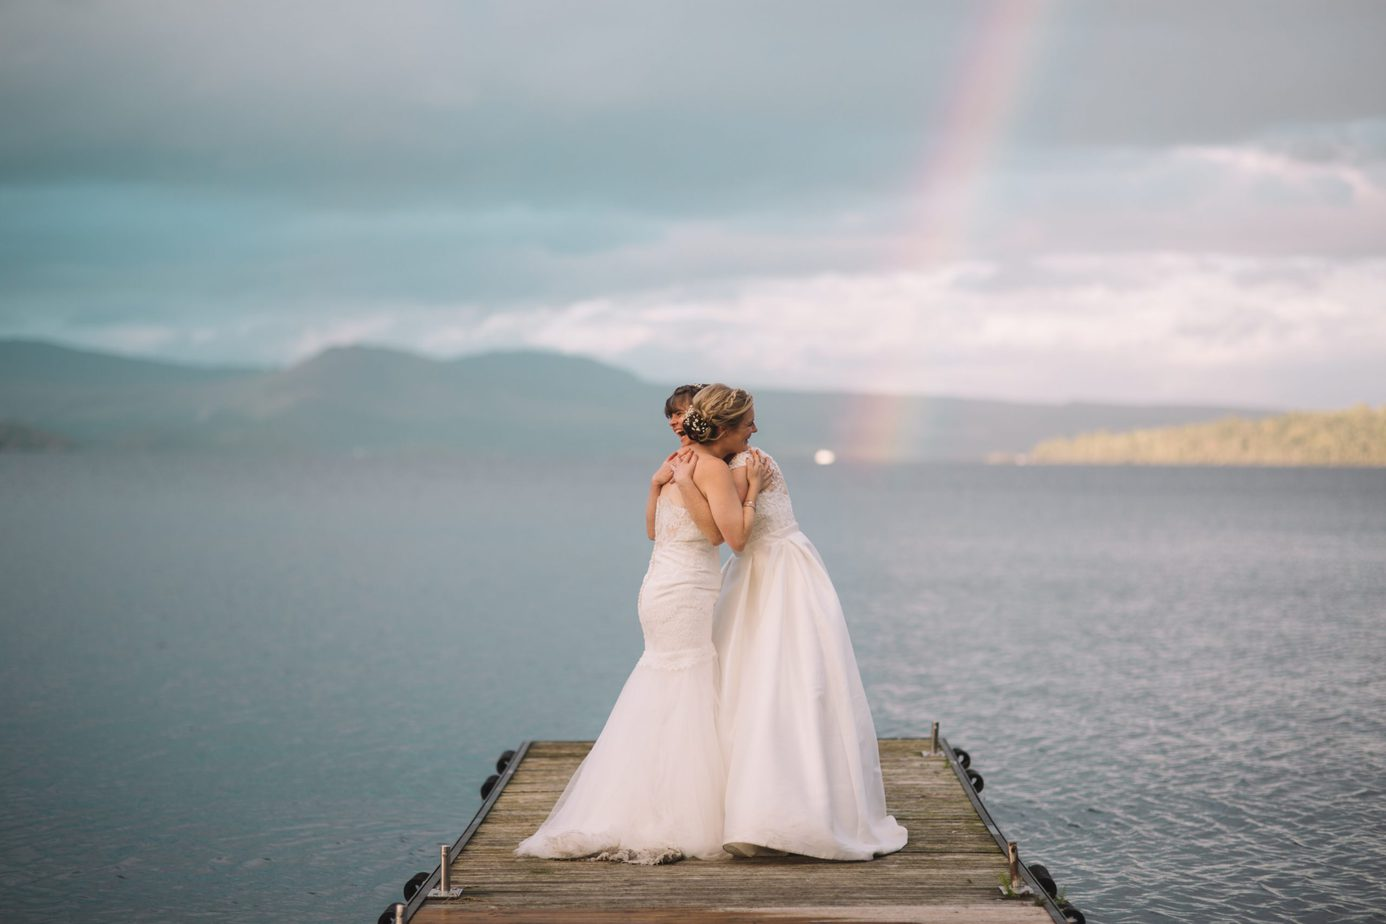 Scotland elopement. Bride and bride, same sex couple cuddling in front of loch lomond with rainbow, during an elopement